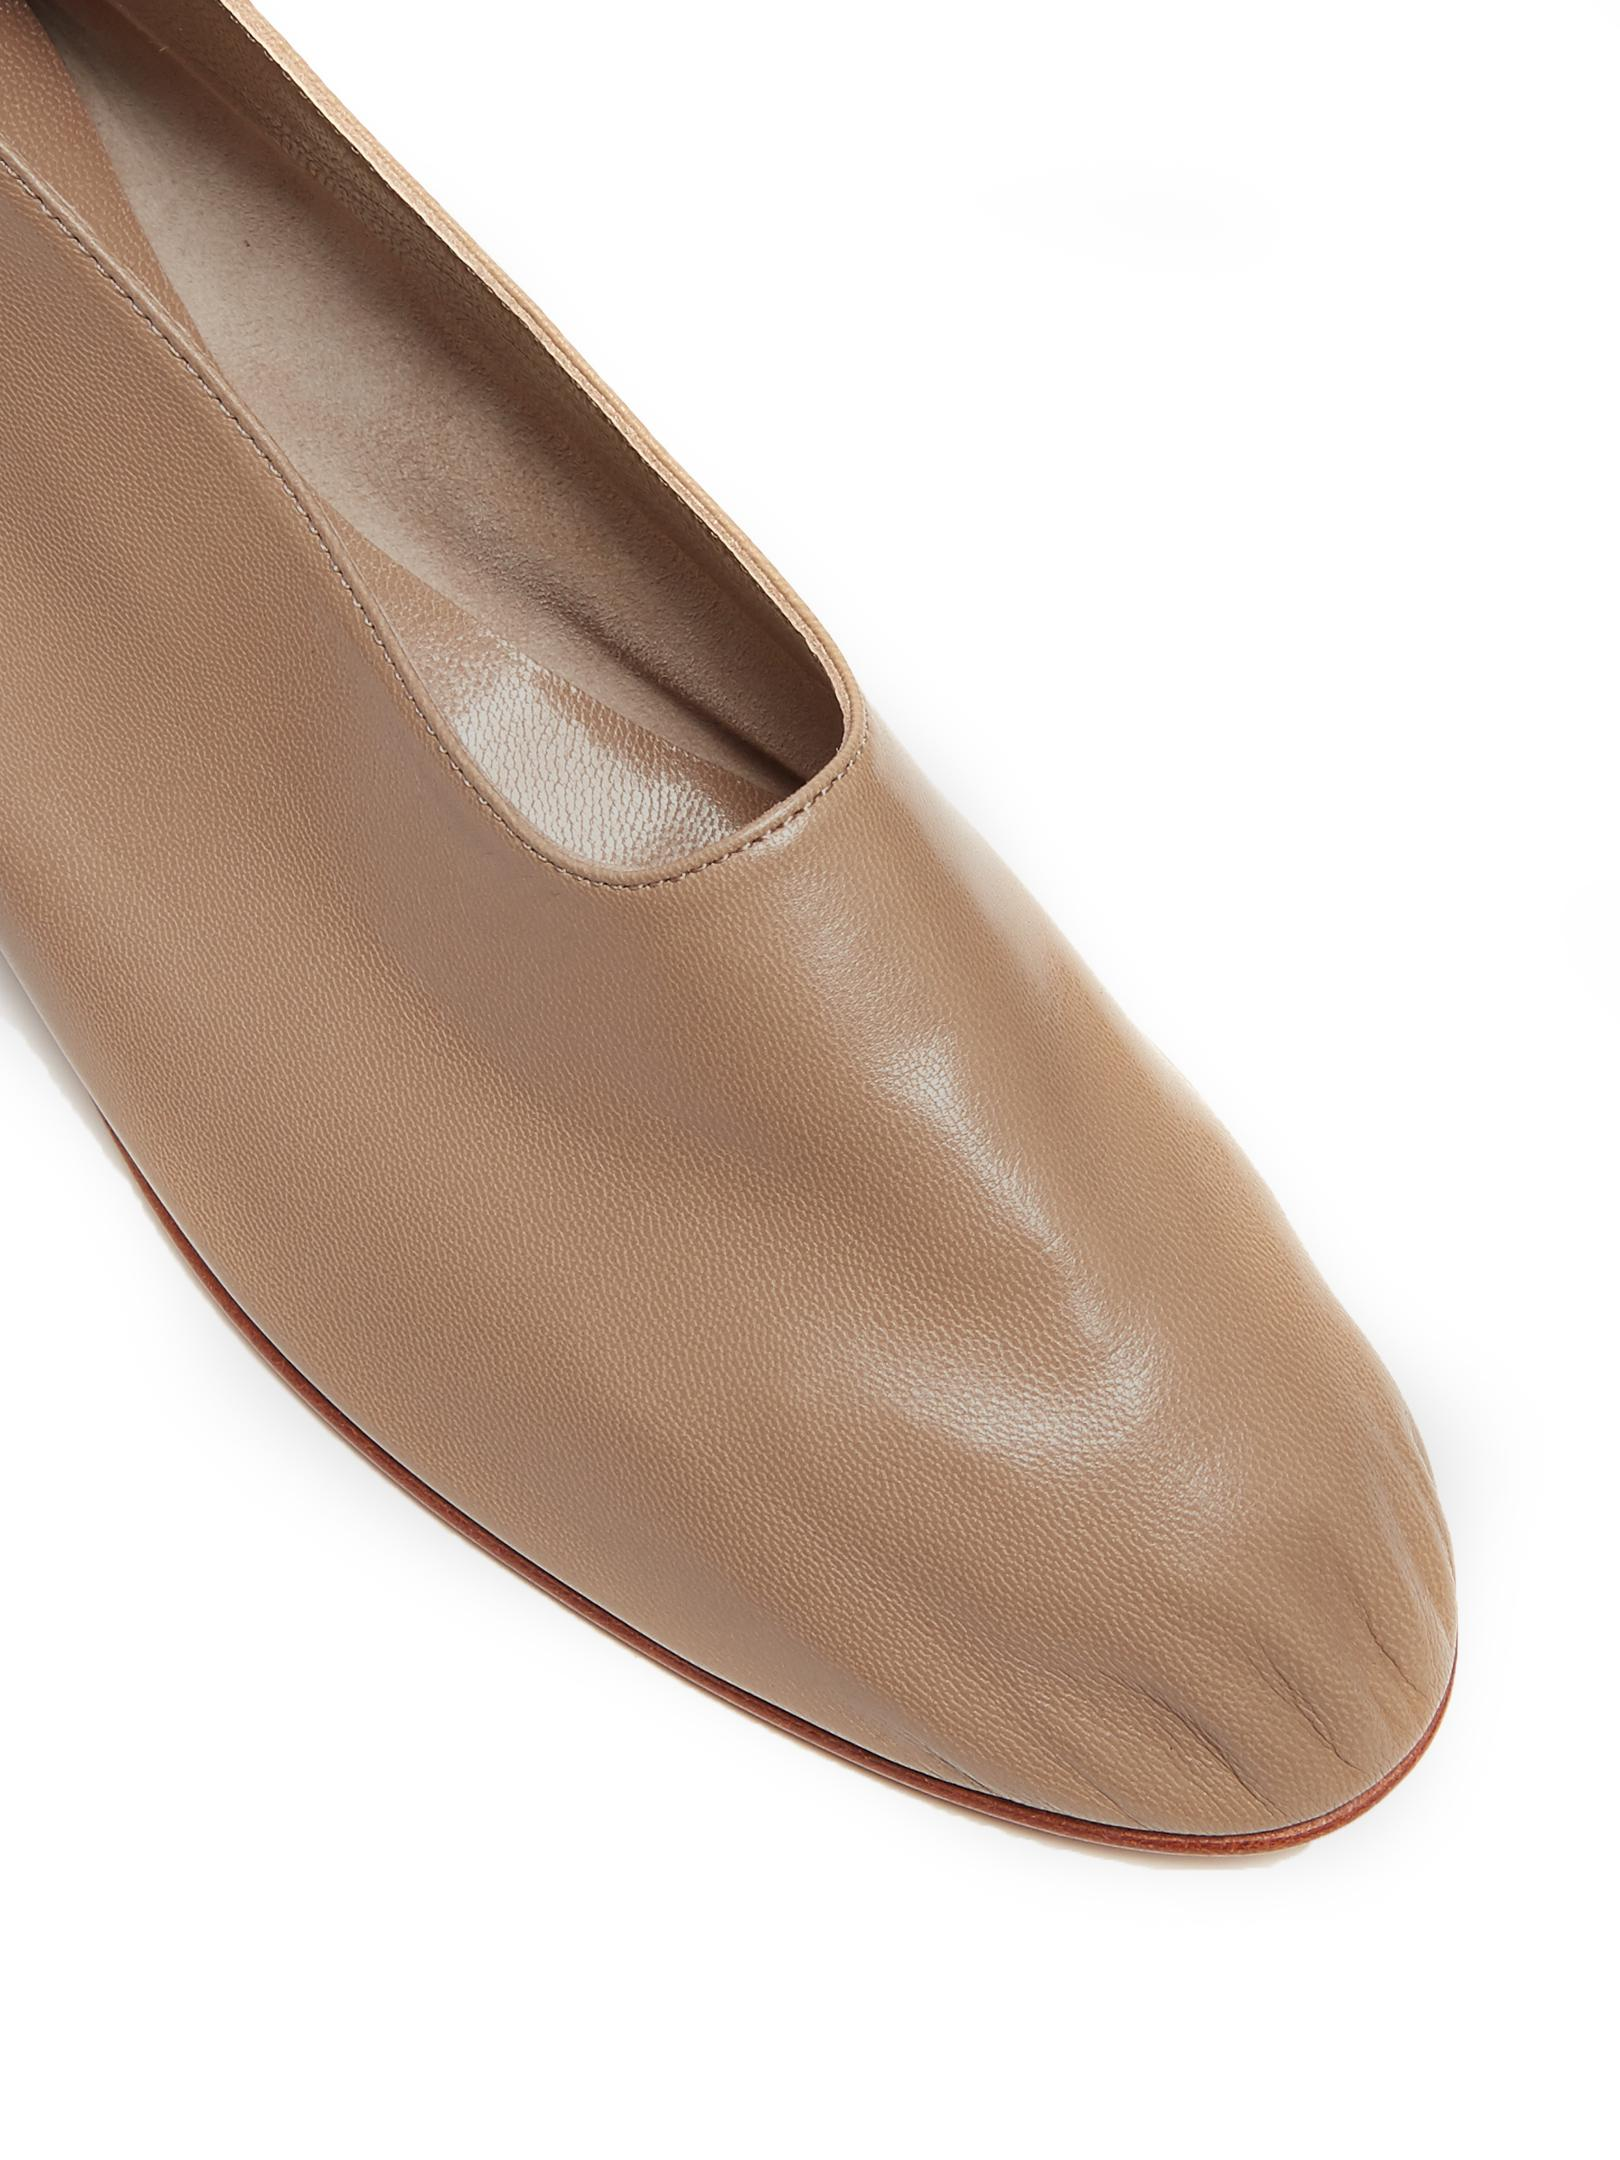 From China Online Purchase Cheap Online Martiniano Leather Ballet Flats Buy Cheap Extremely WfXDZ4